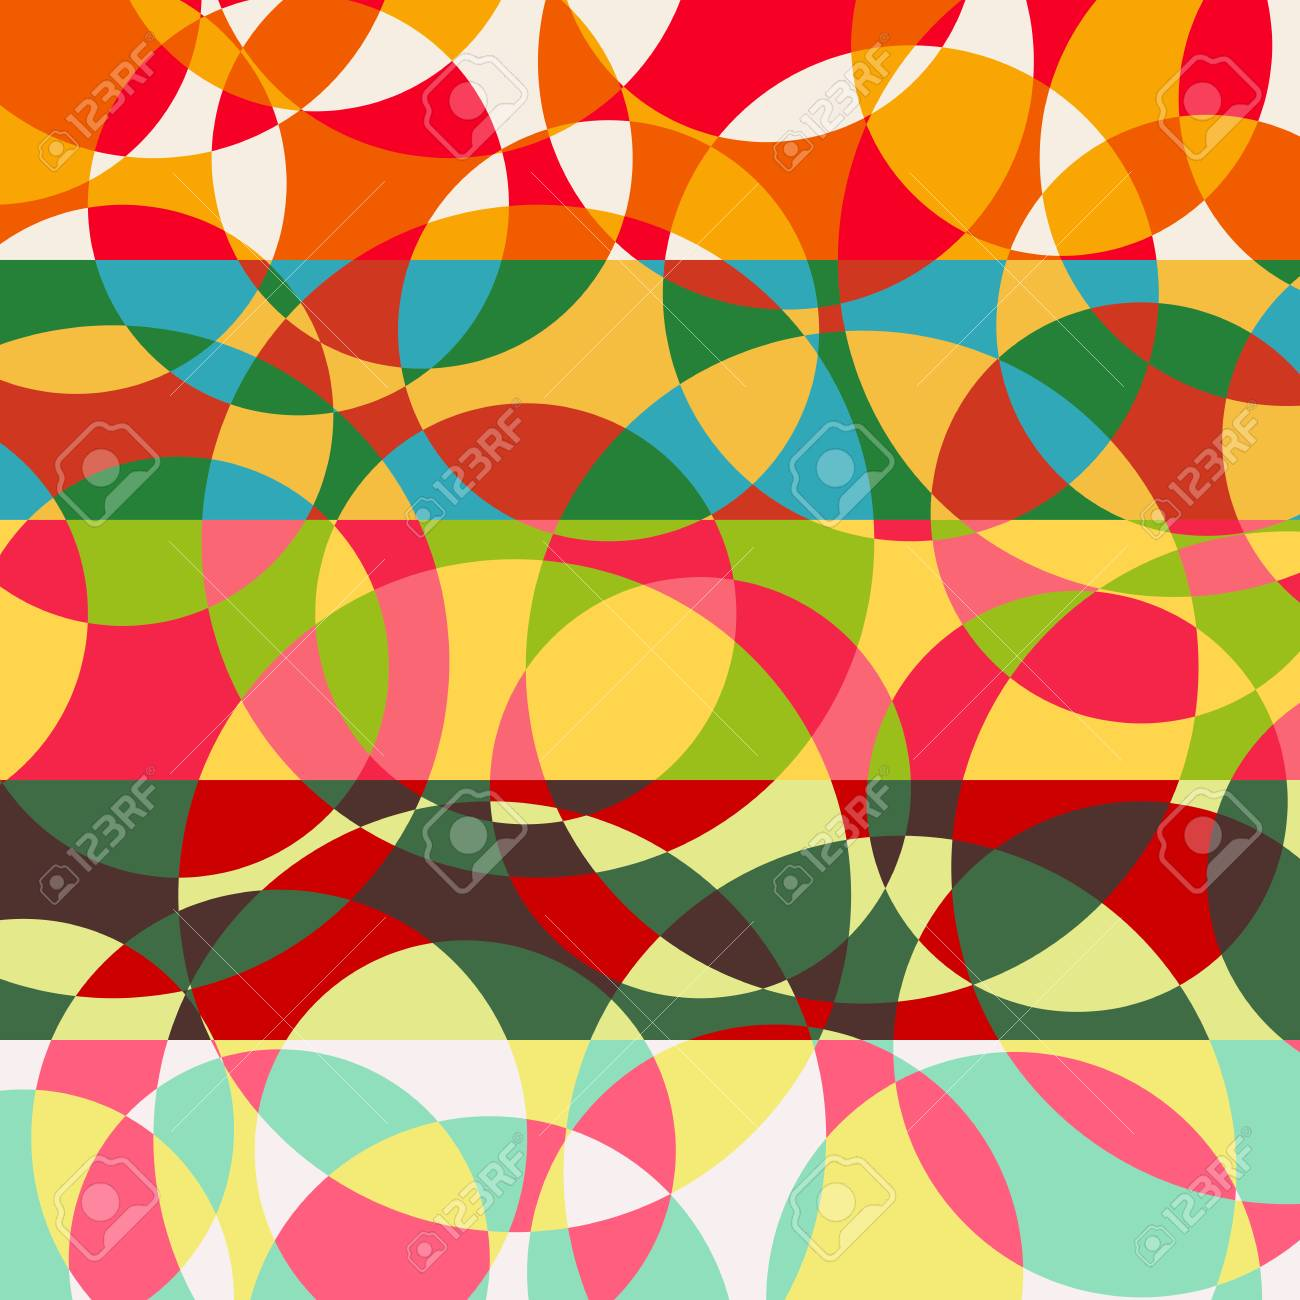 vector background, geometric shapes, modern design in the concept